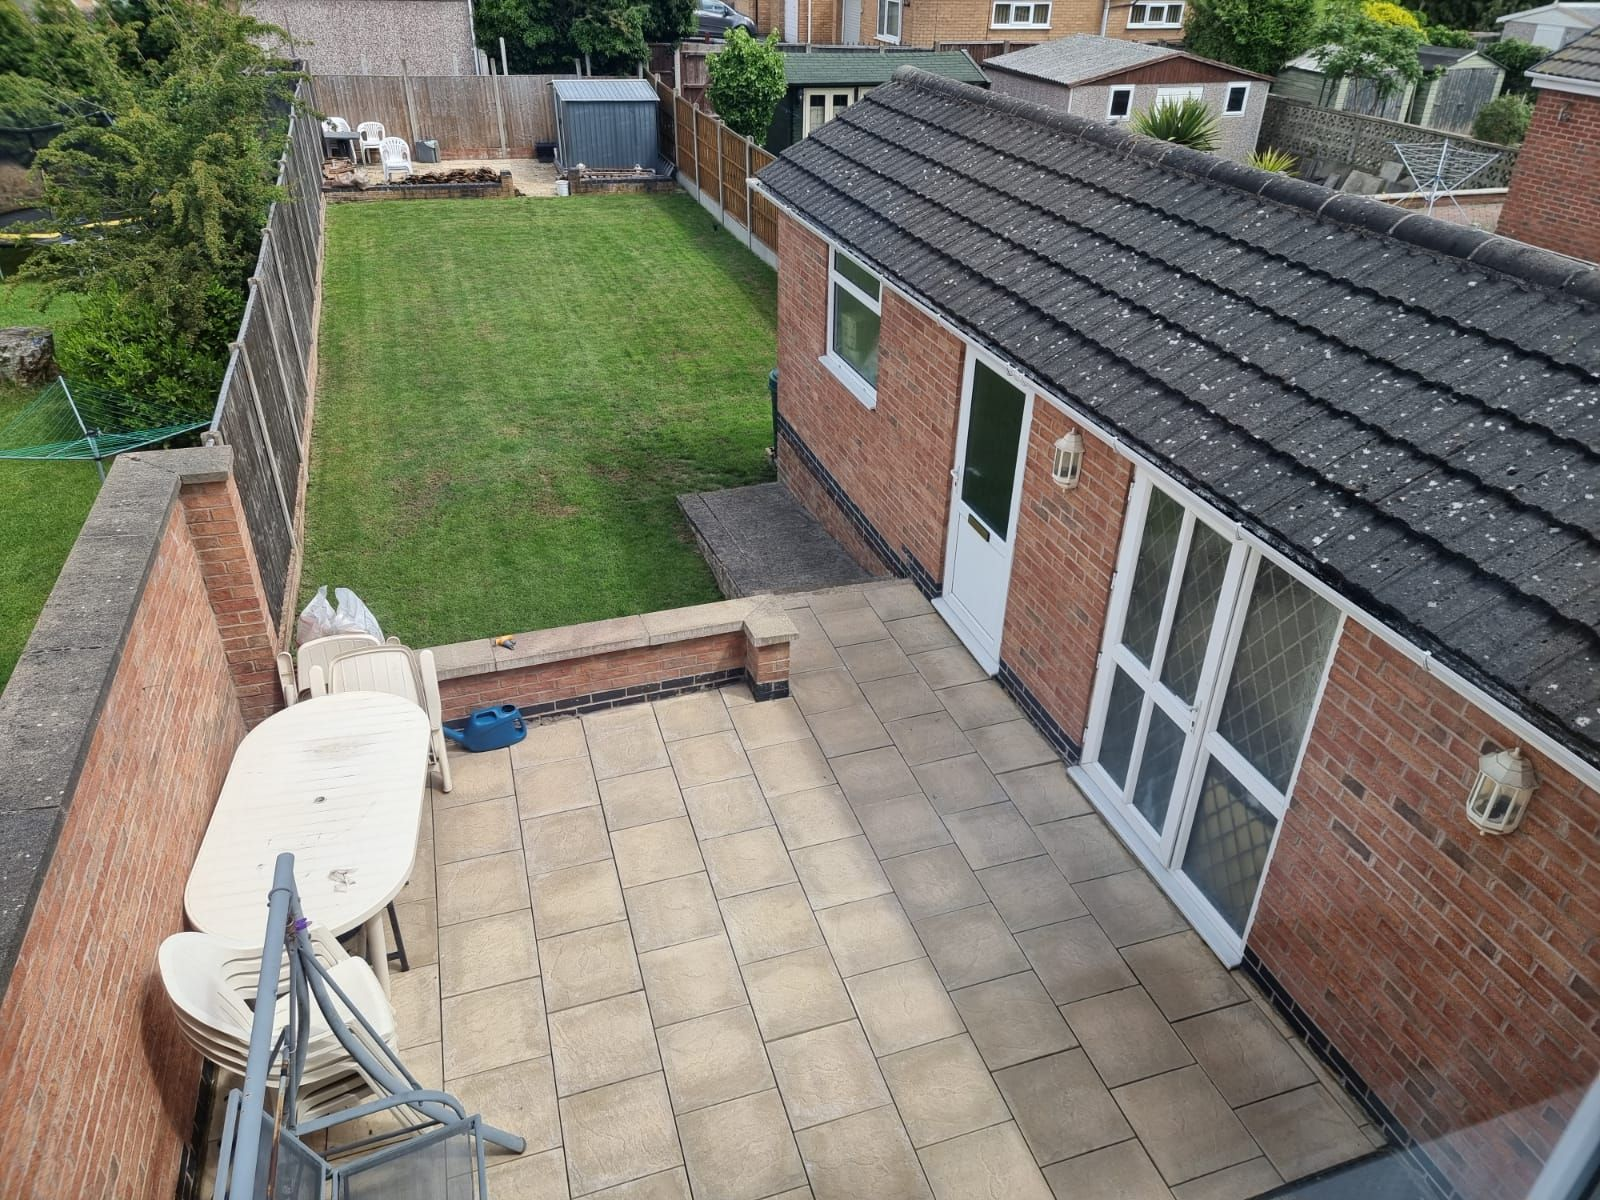 3 bedroom semi-detached house SSTC in Leicester - Photograph 11.